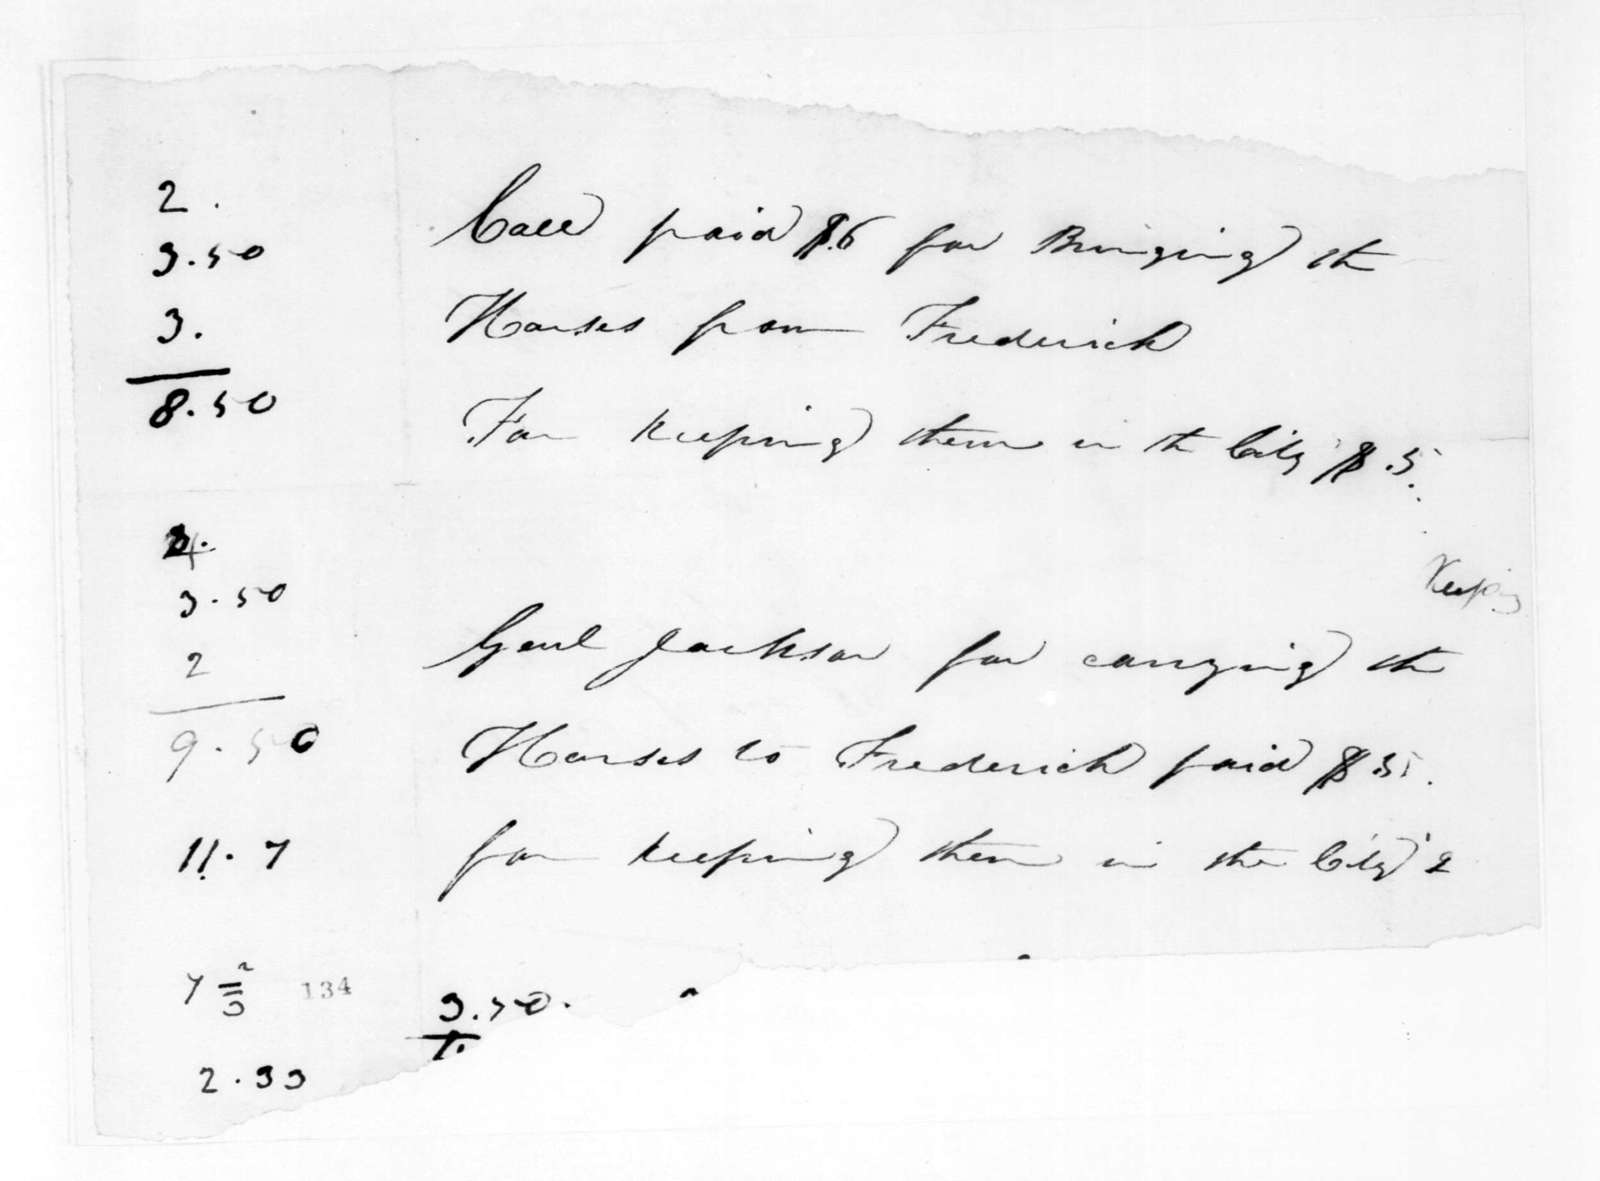 Unknown to Andrew Jackson, March 10, 1825